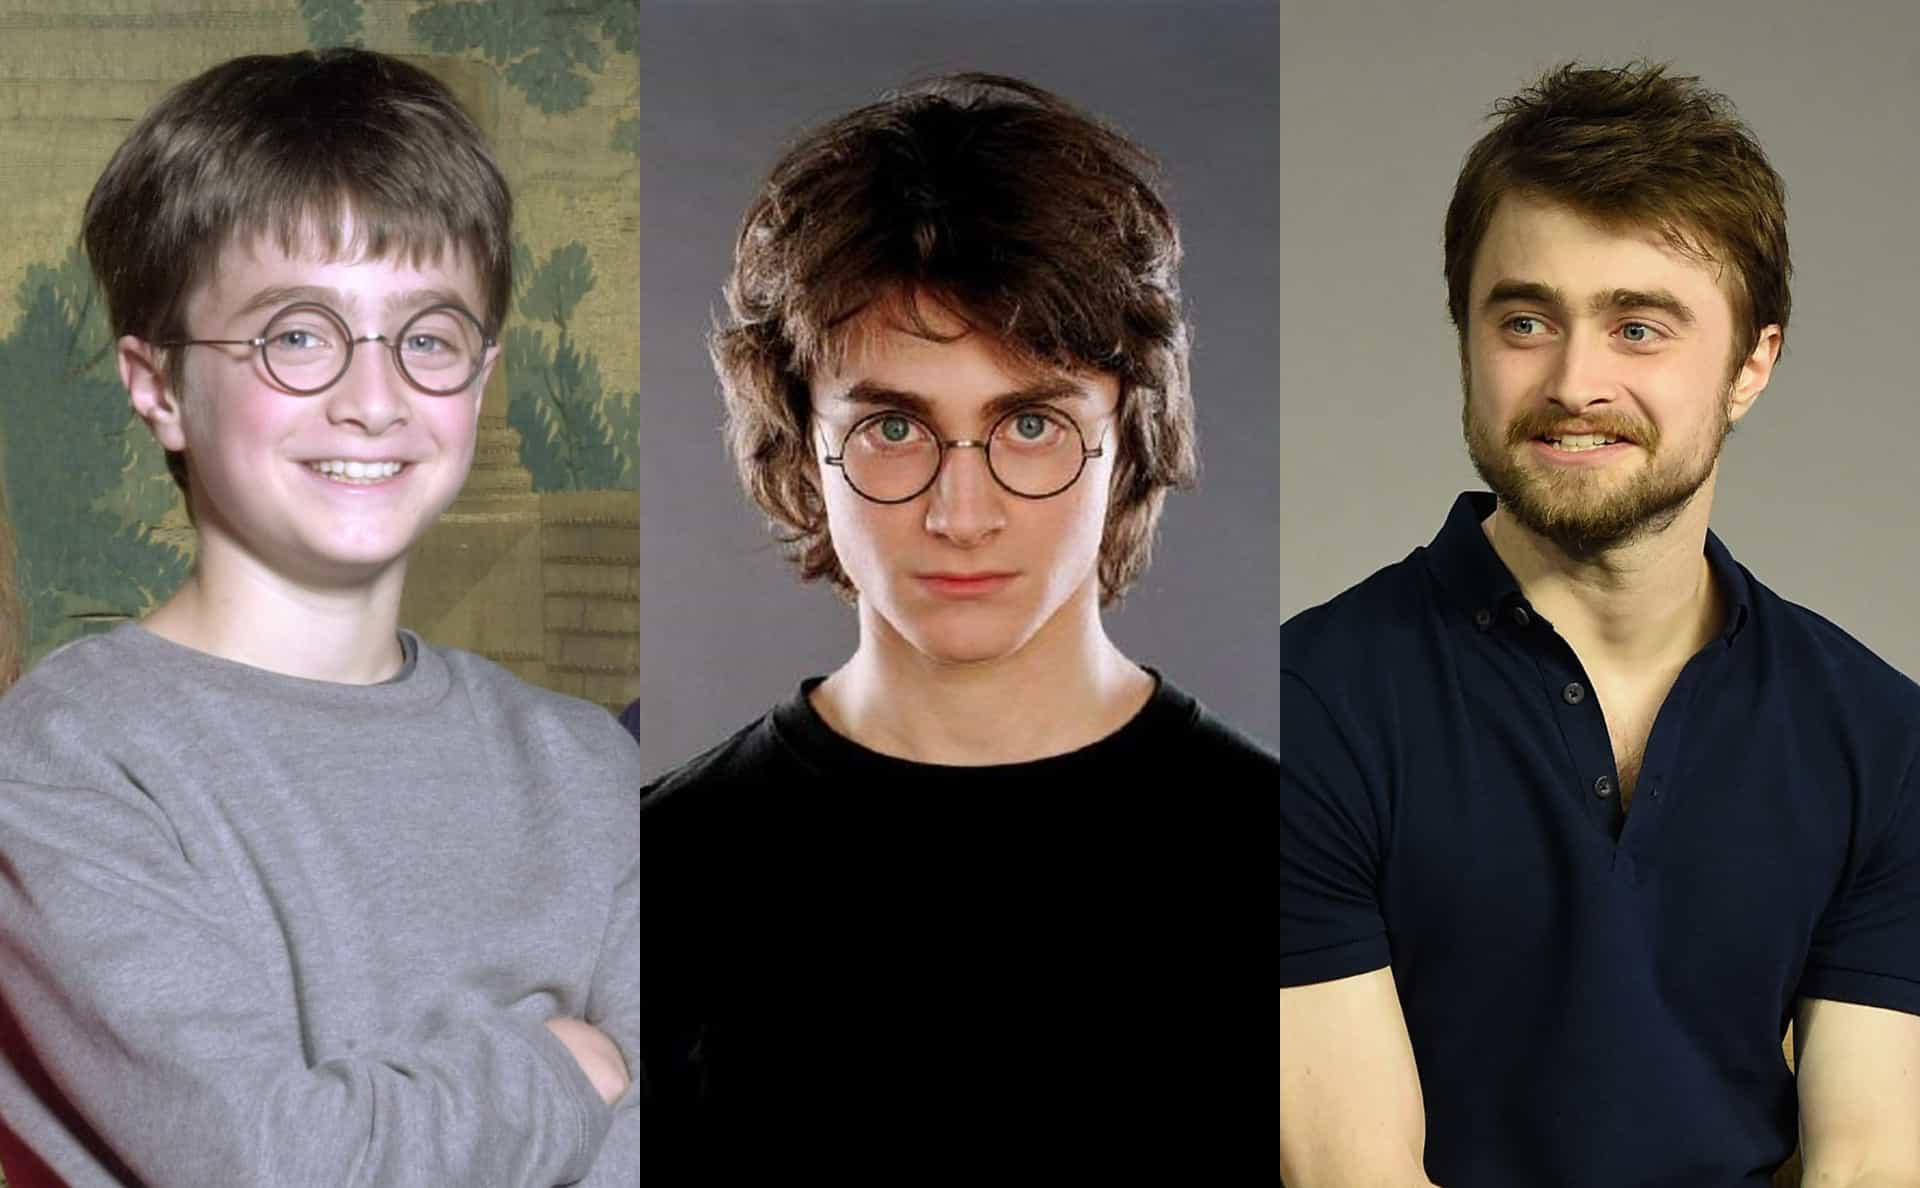 Endearing photos of Daniel Radcliffe growing up